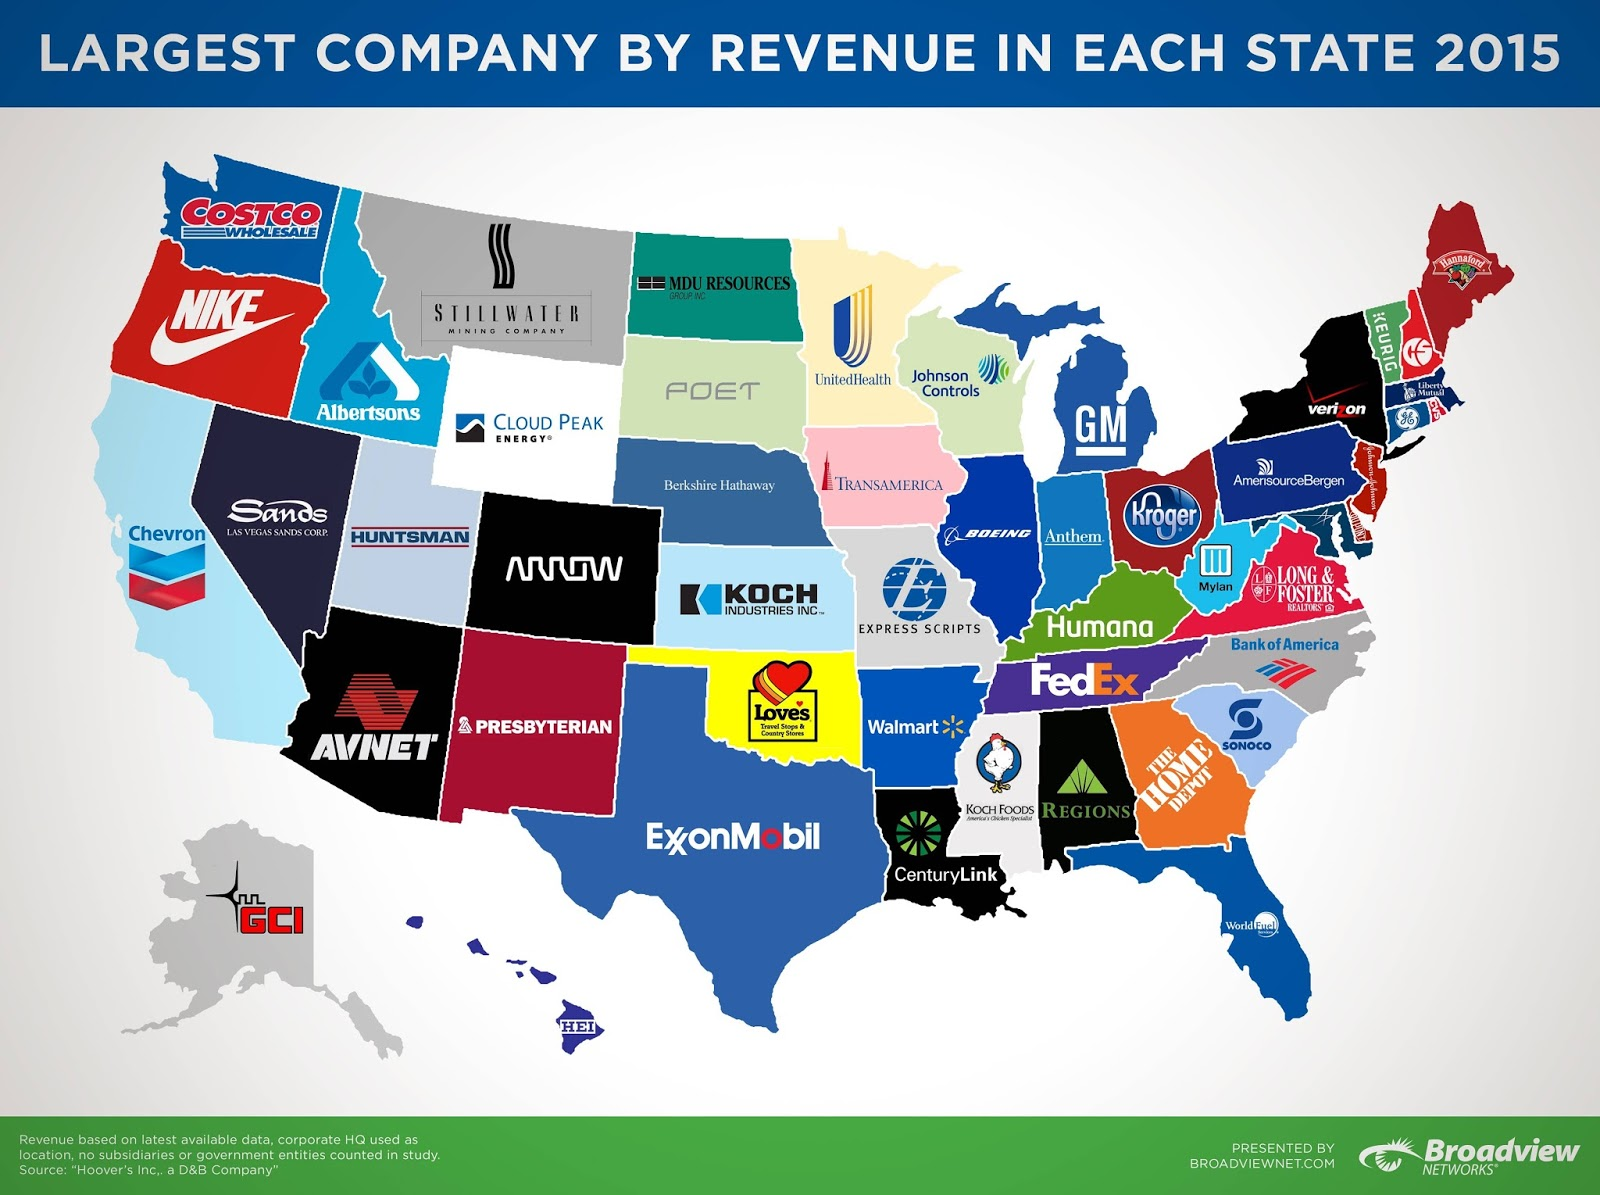 Largest Company by Revenue in Each State